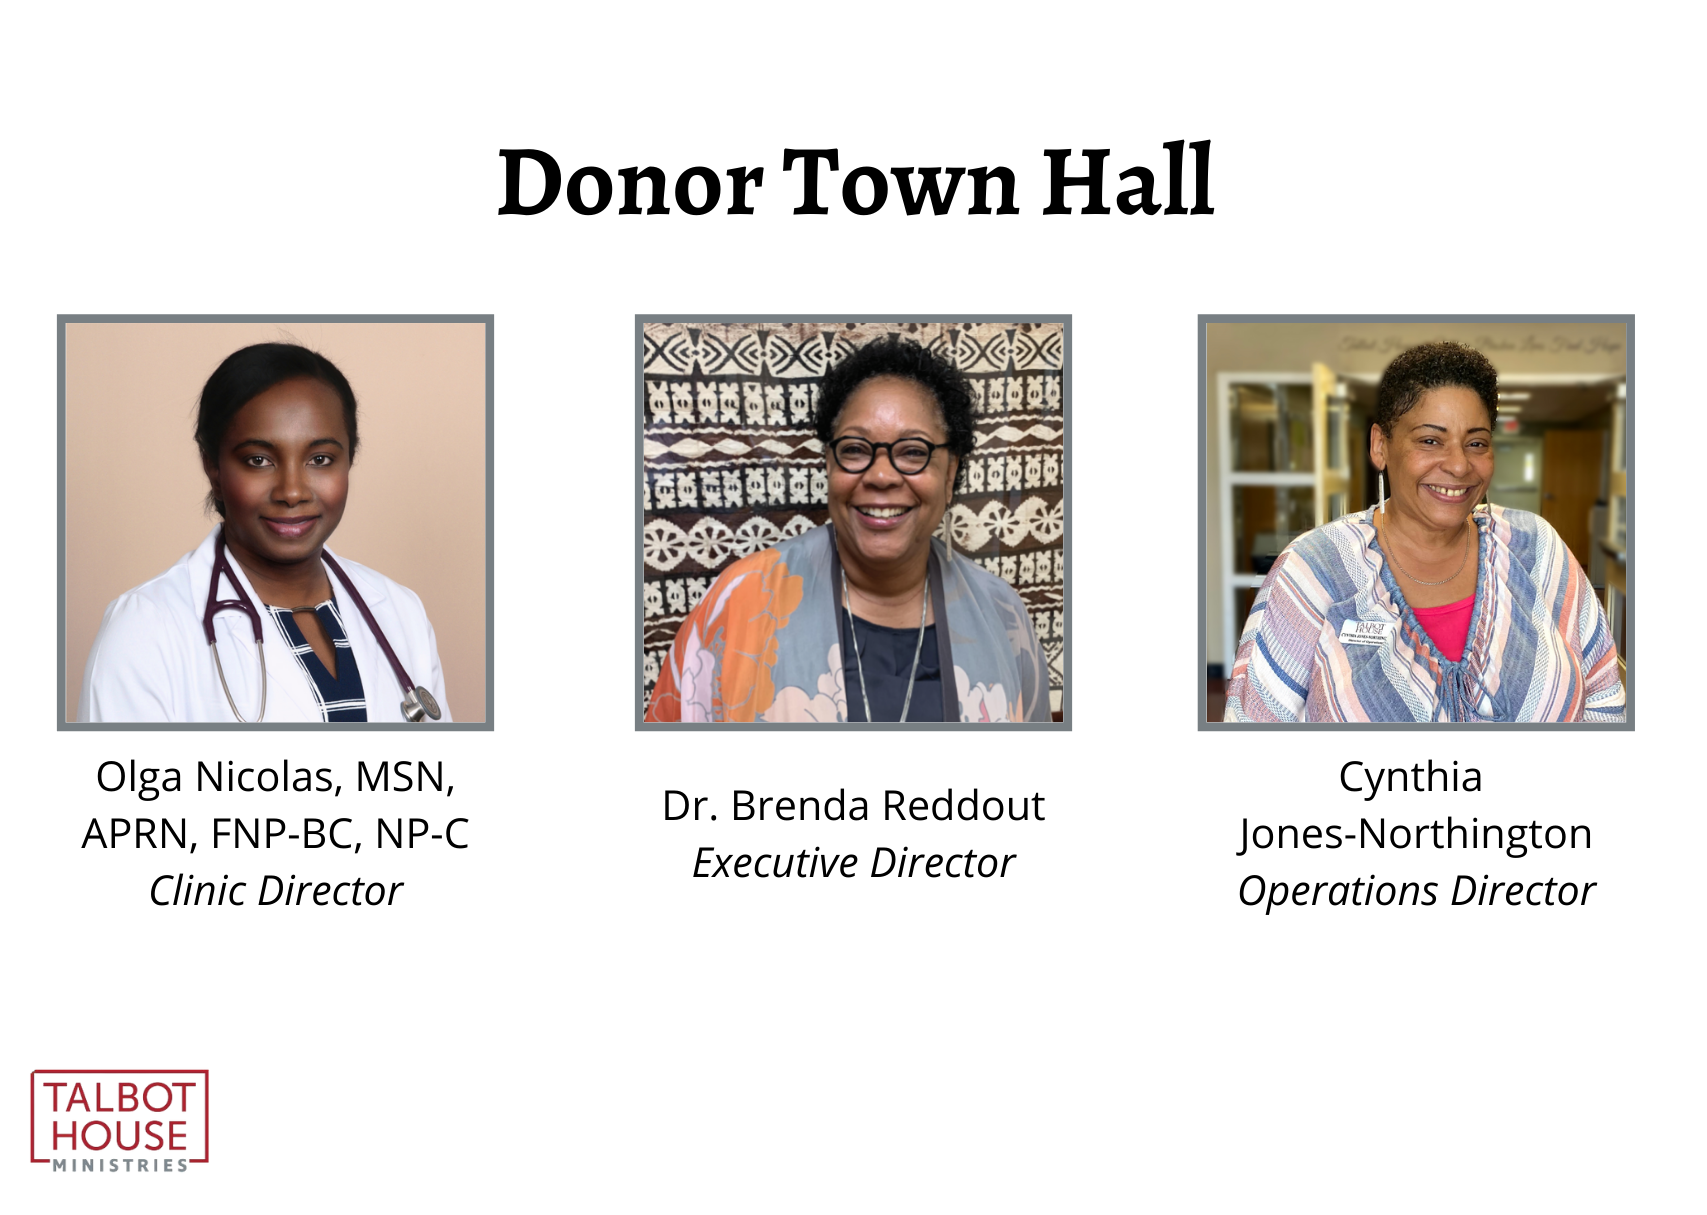 Your Donor Town Hall Invitation